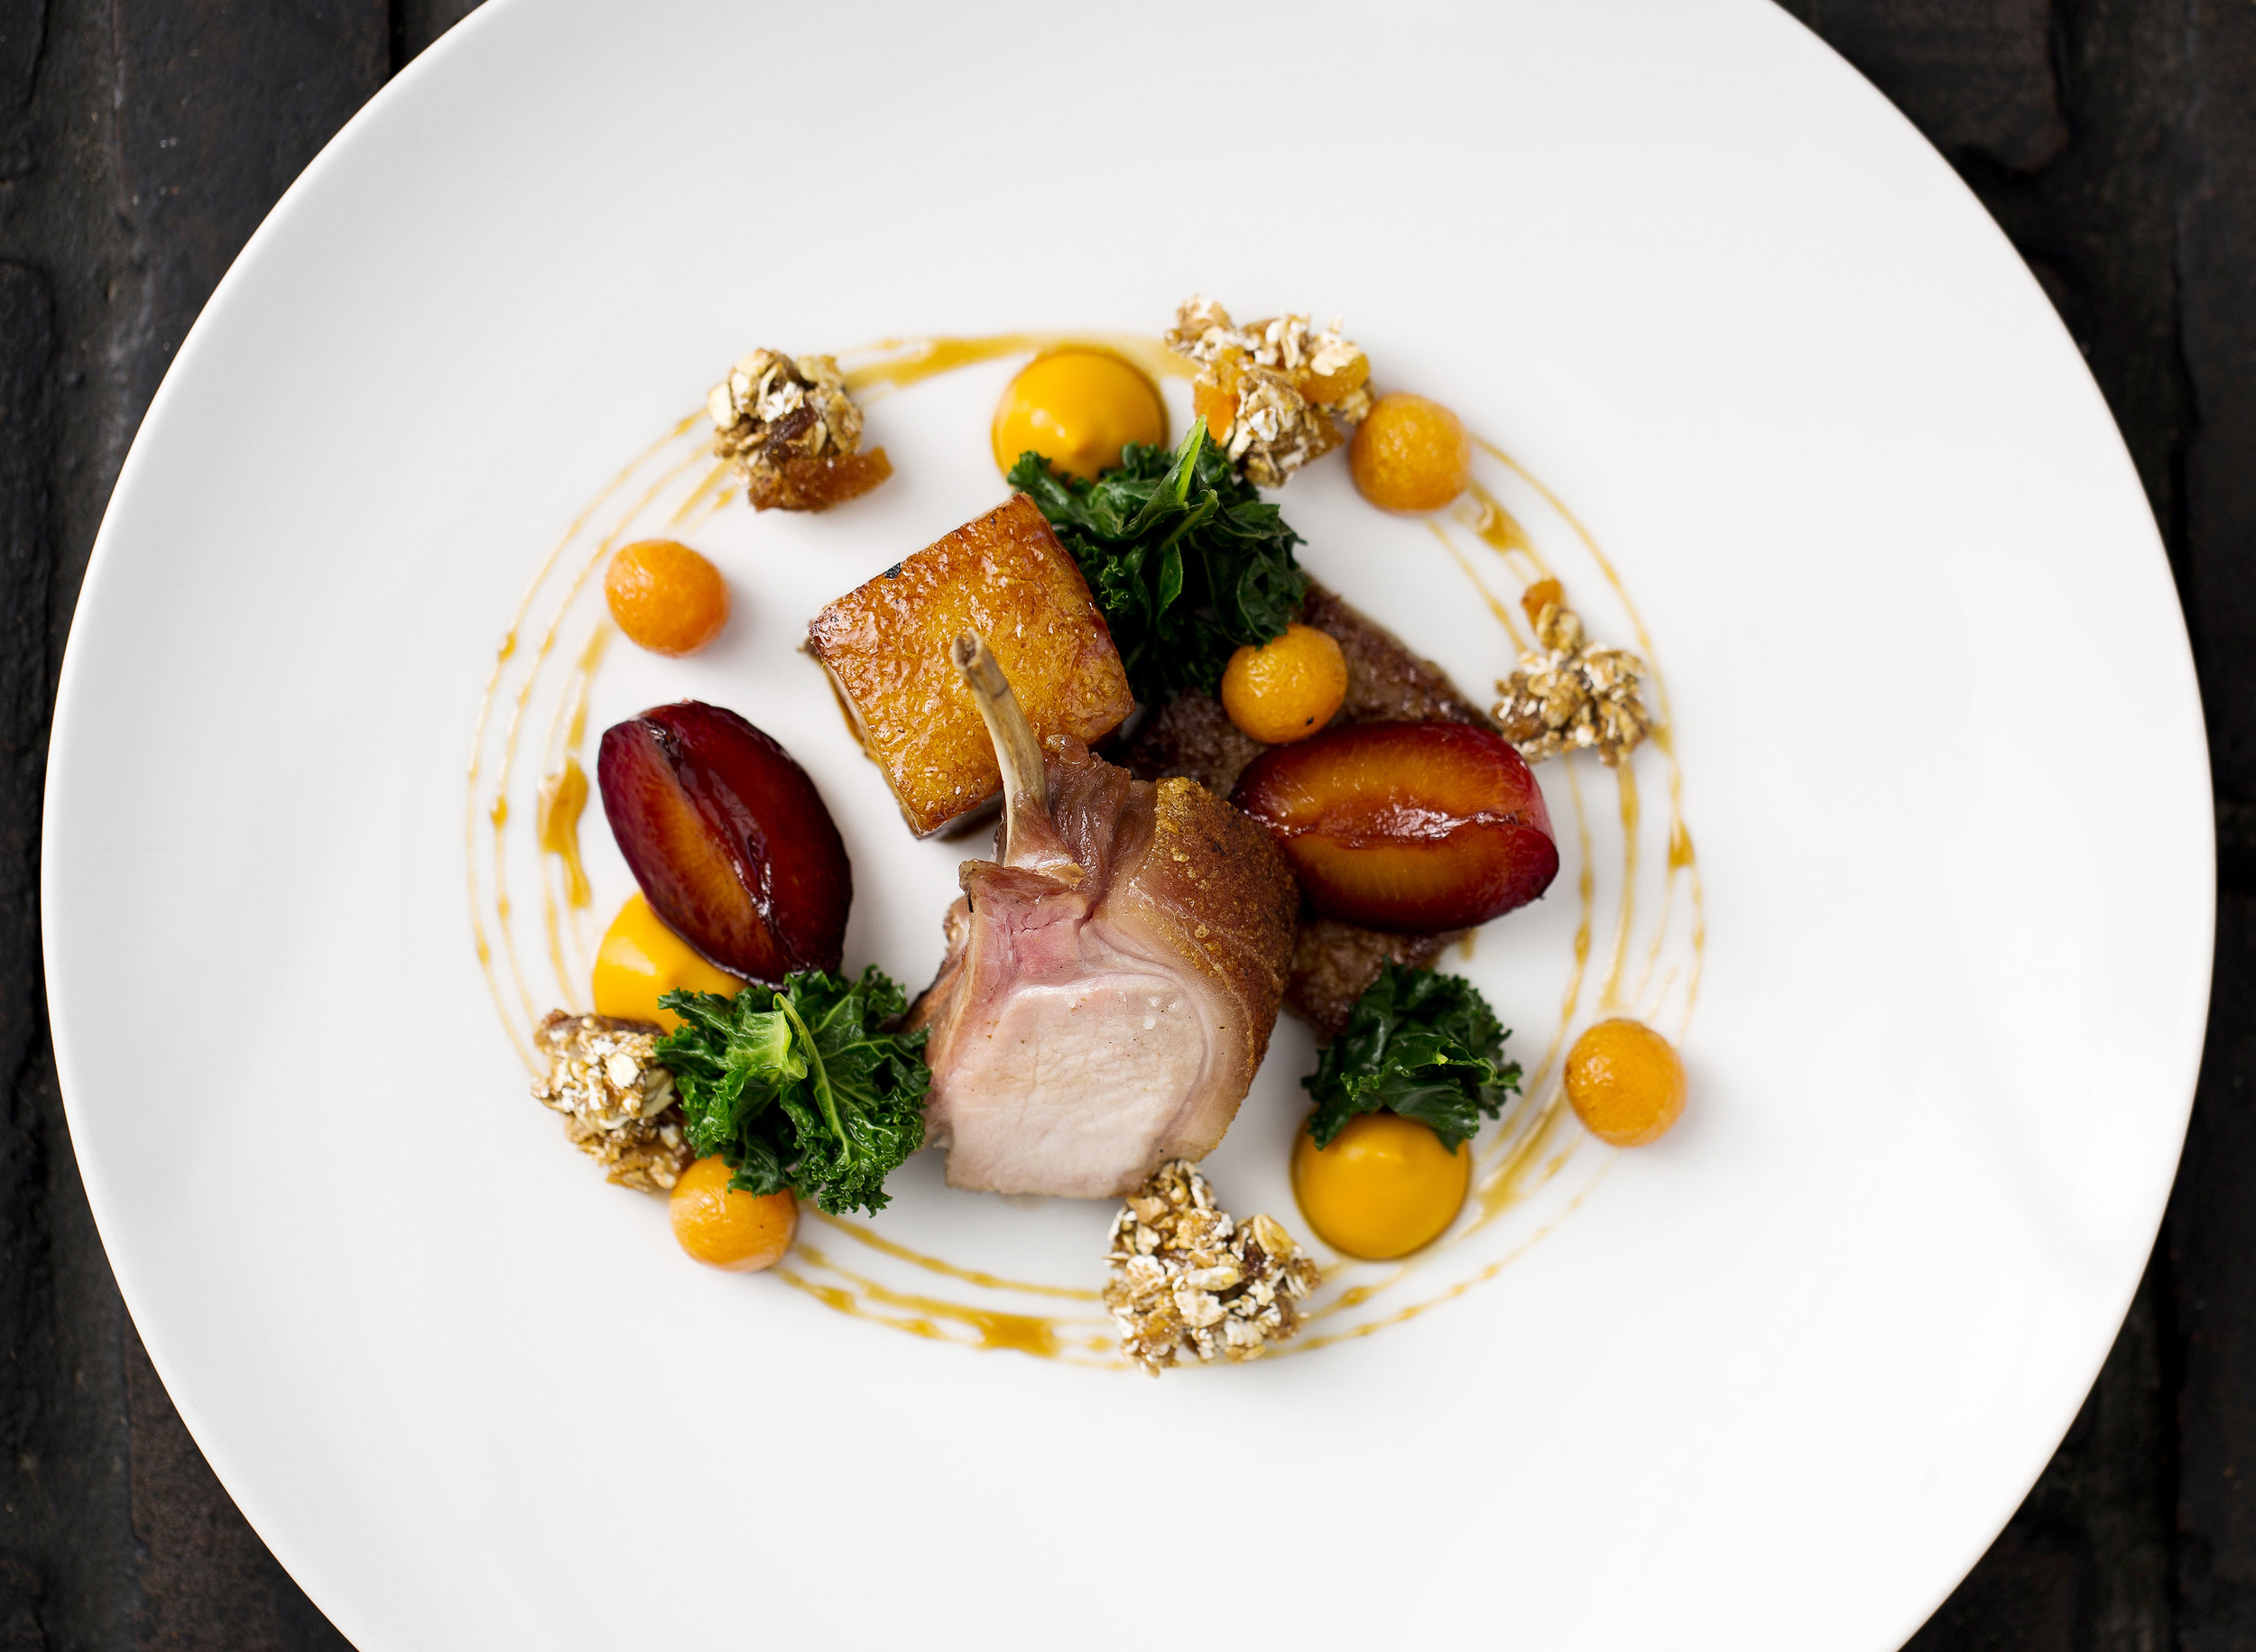 Cumbrian suckling pig, pumpkin puree, kale, spiced plums, granola clusters_3.jpg